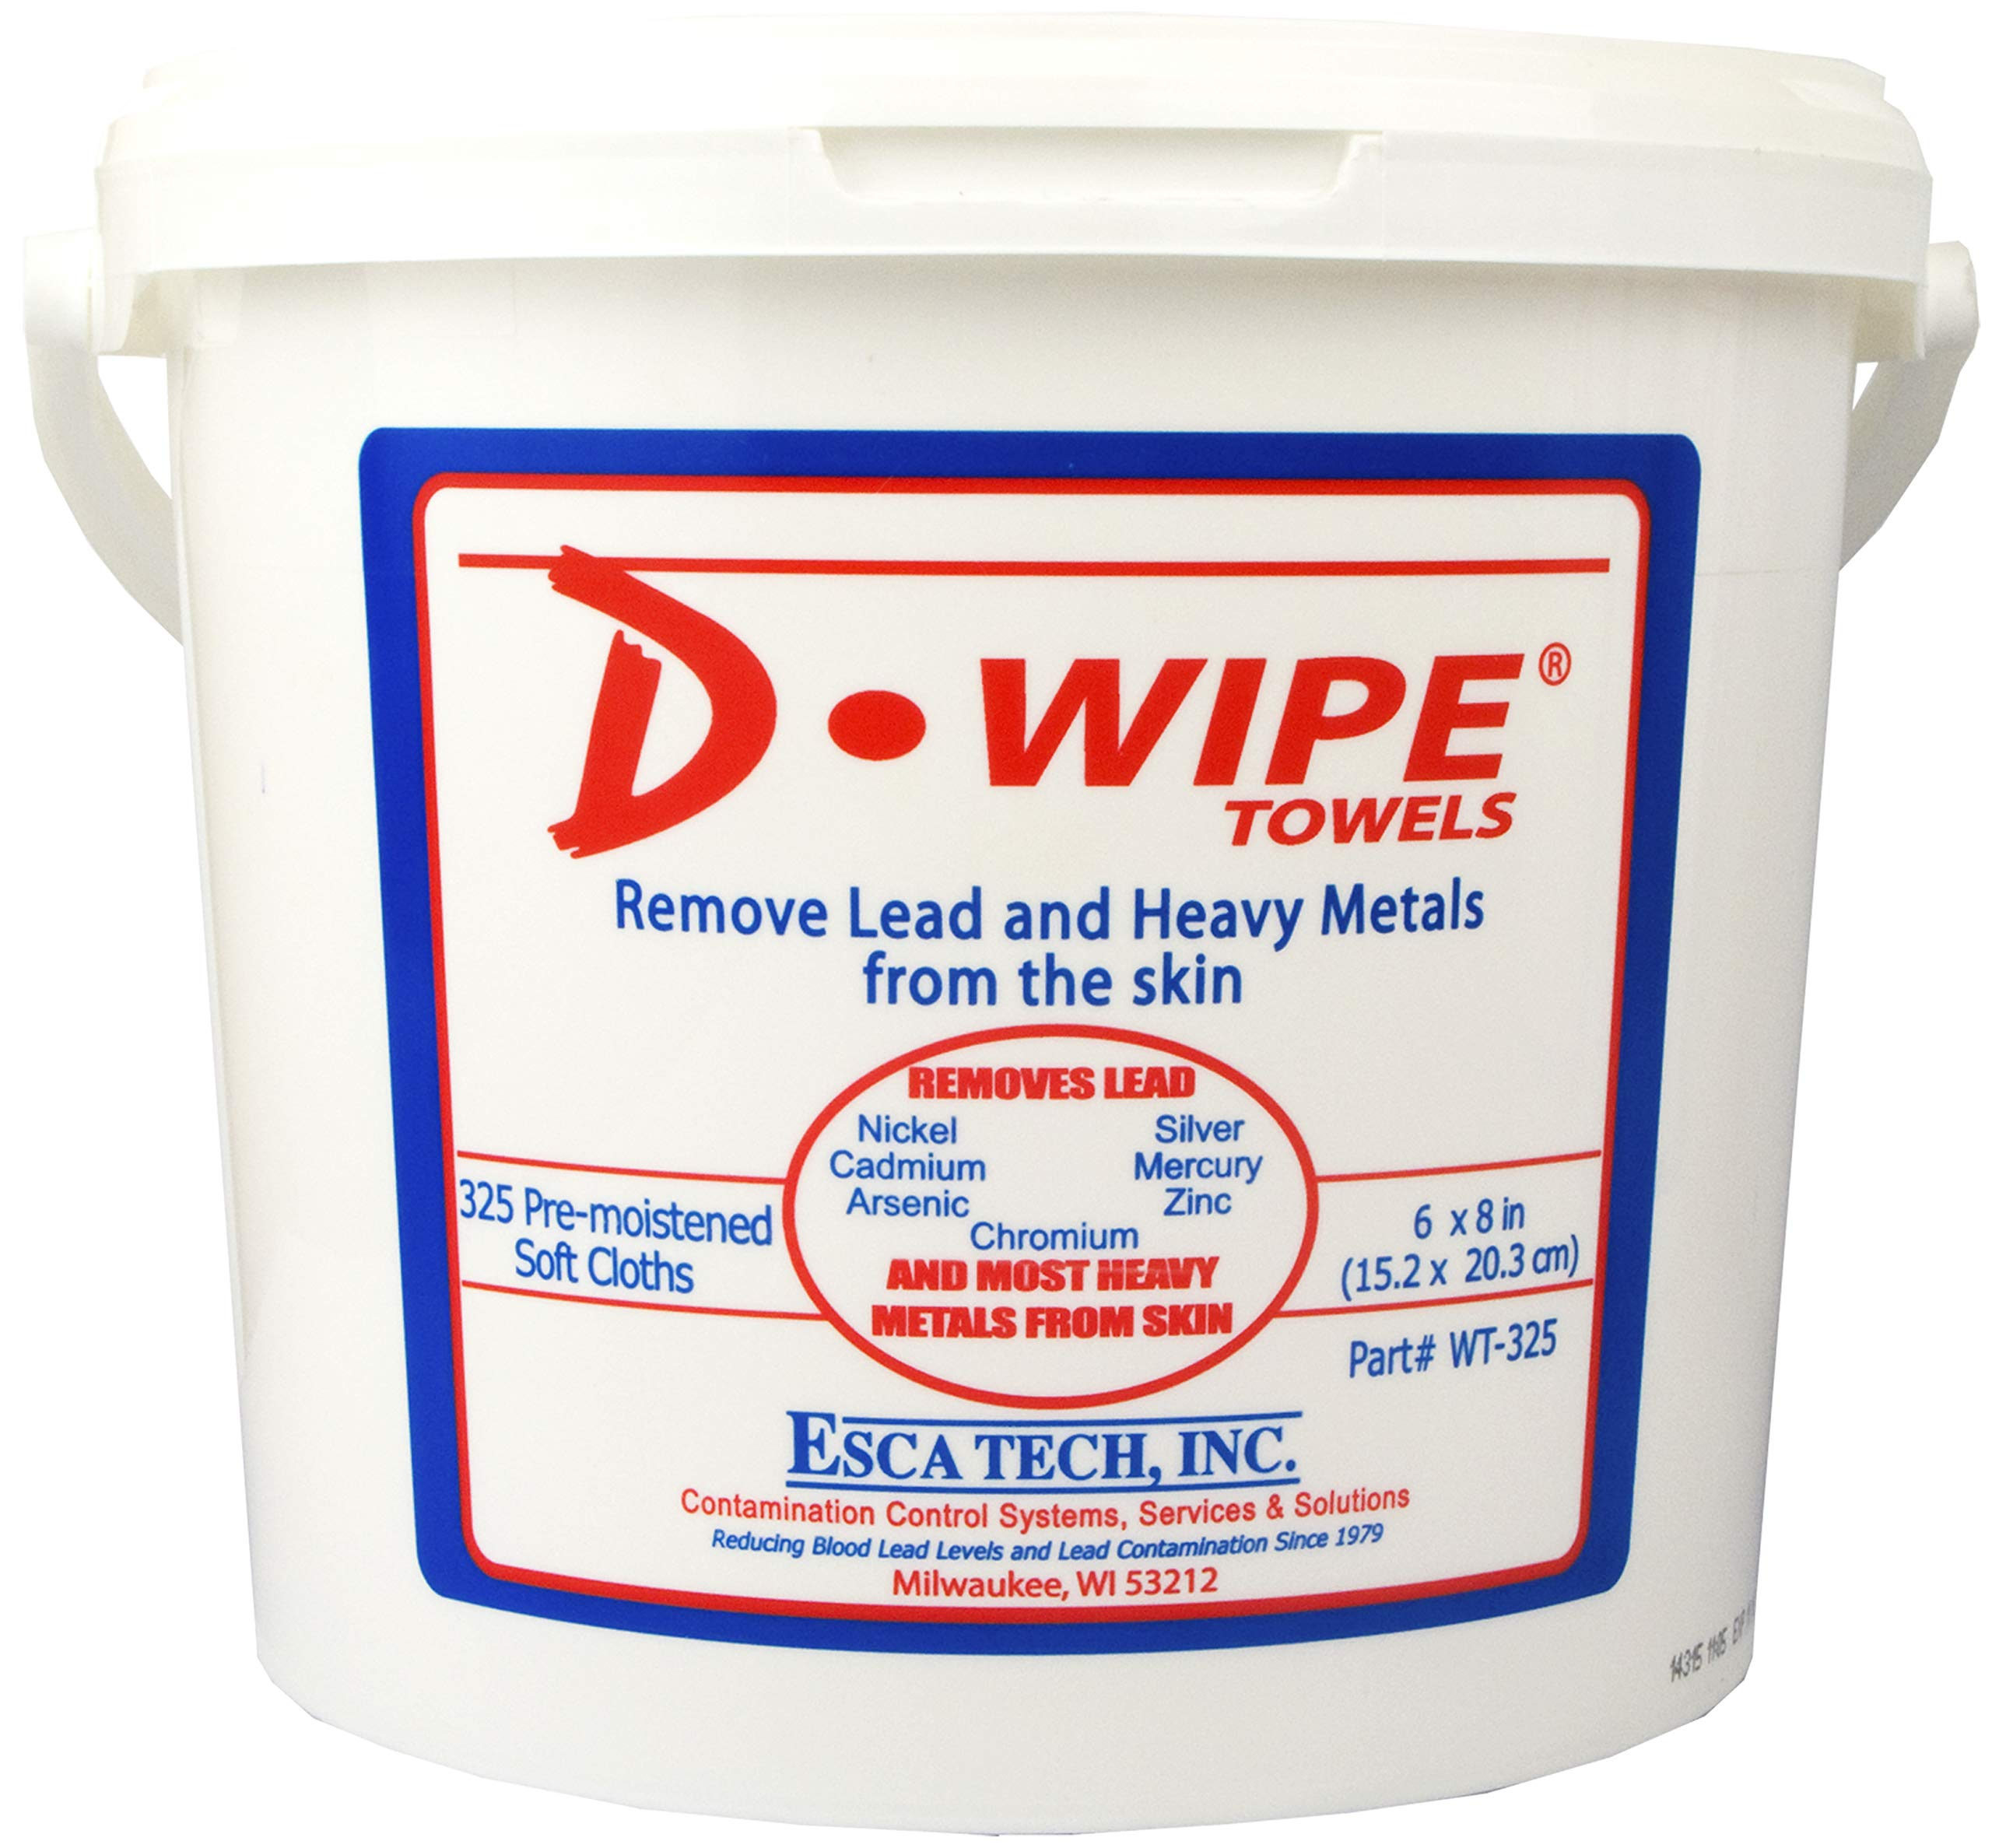 D-Wipe Towels, Lead Removing Disposable Wipes (325 Wipes), WT-325 by ESCA Tech